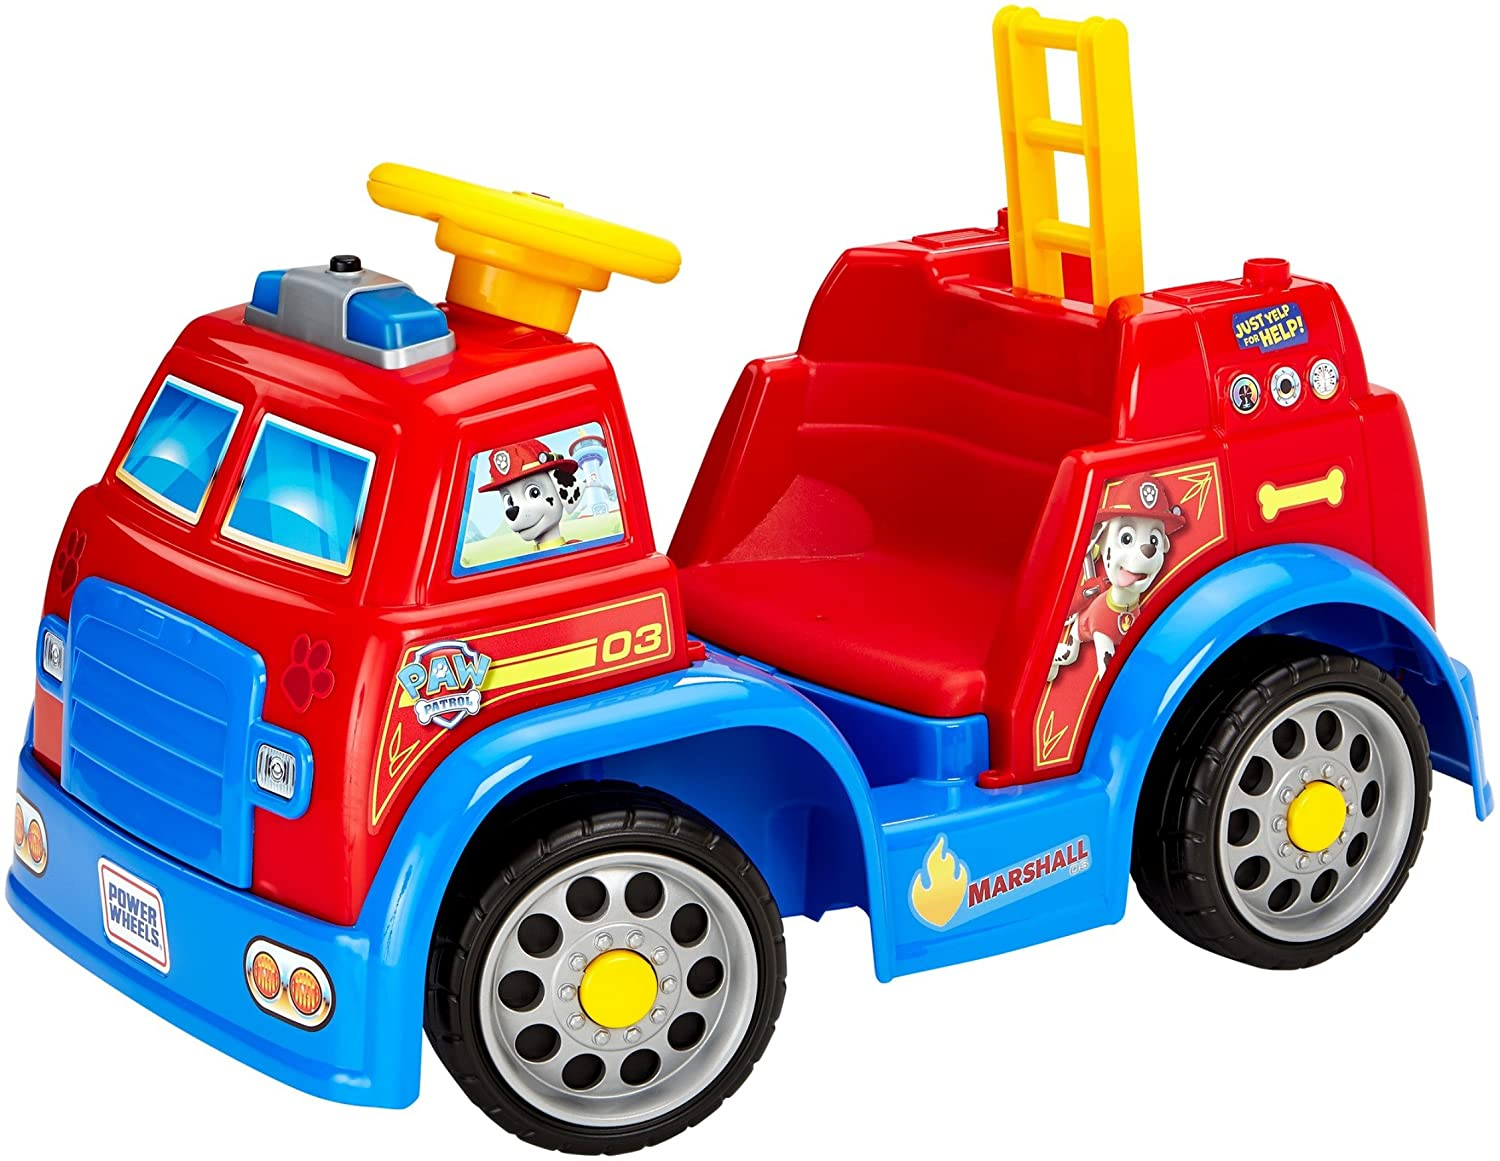 Truck Toys For 3 Year Olds : Best toys for year old boys ⋆ perfect gift store